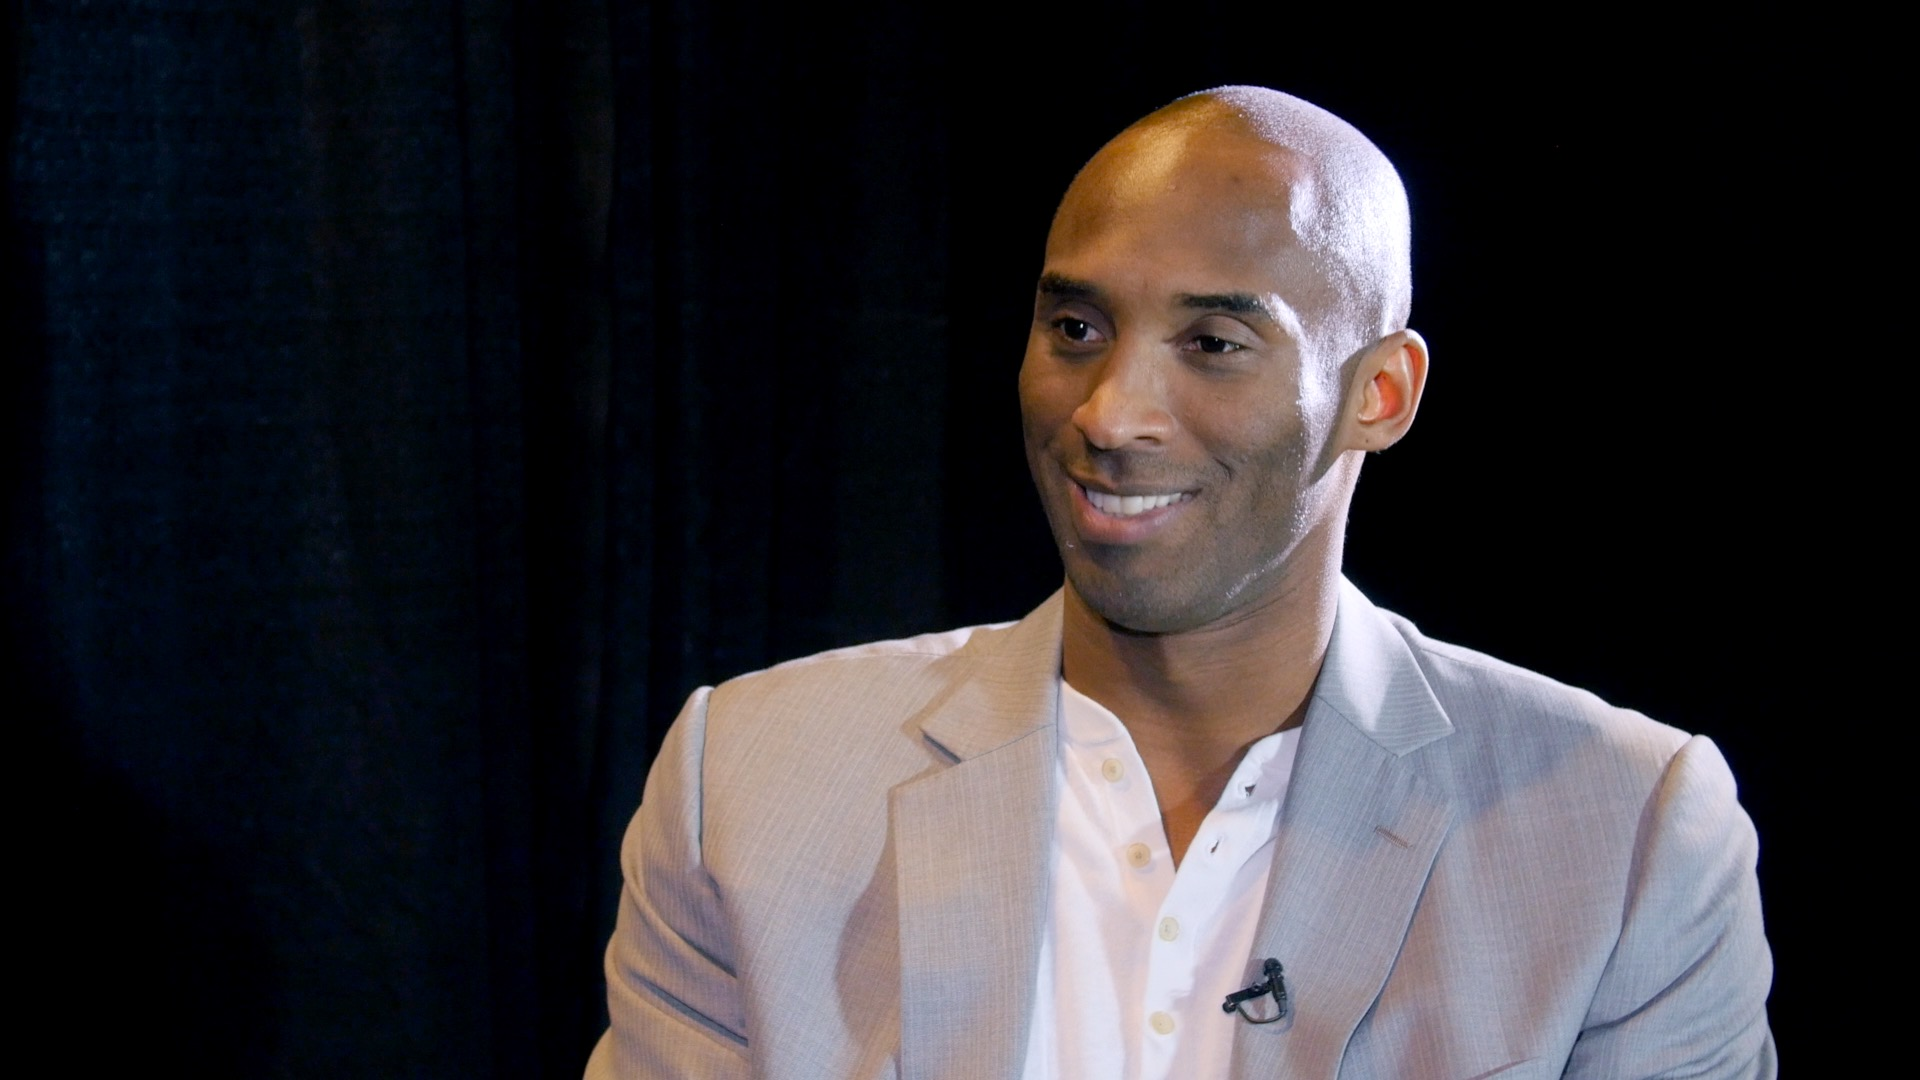 Kobe Bryant reflects on his career in final days as a Laker